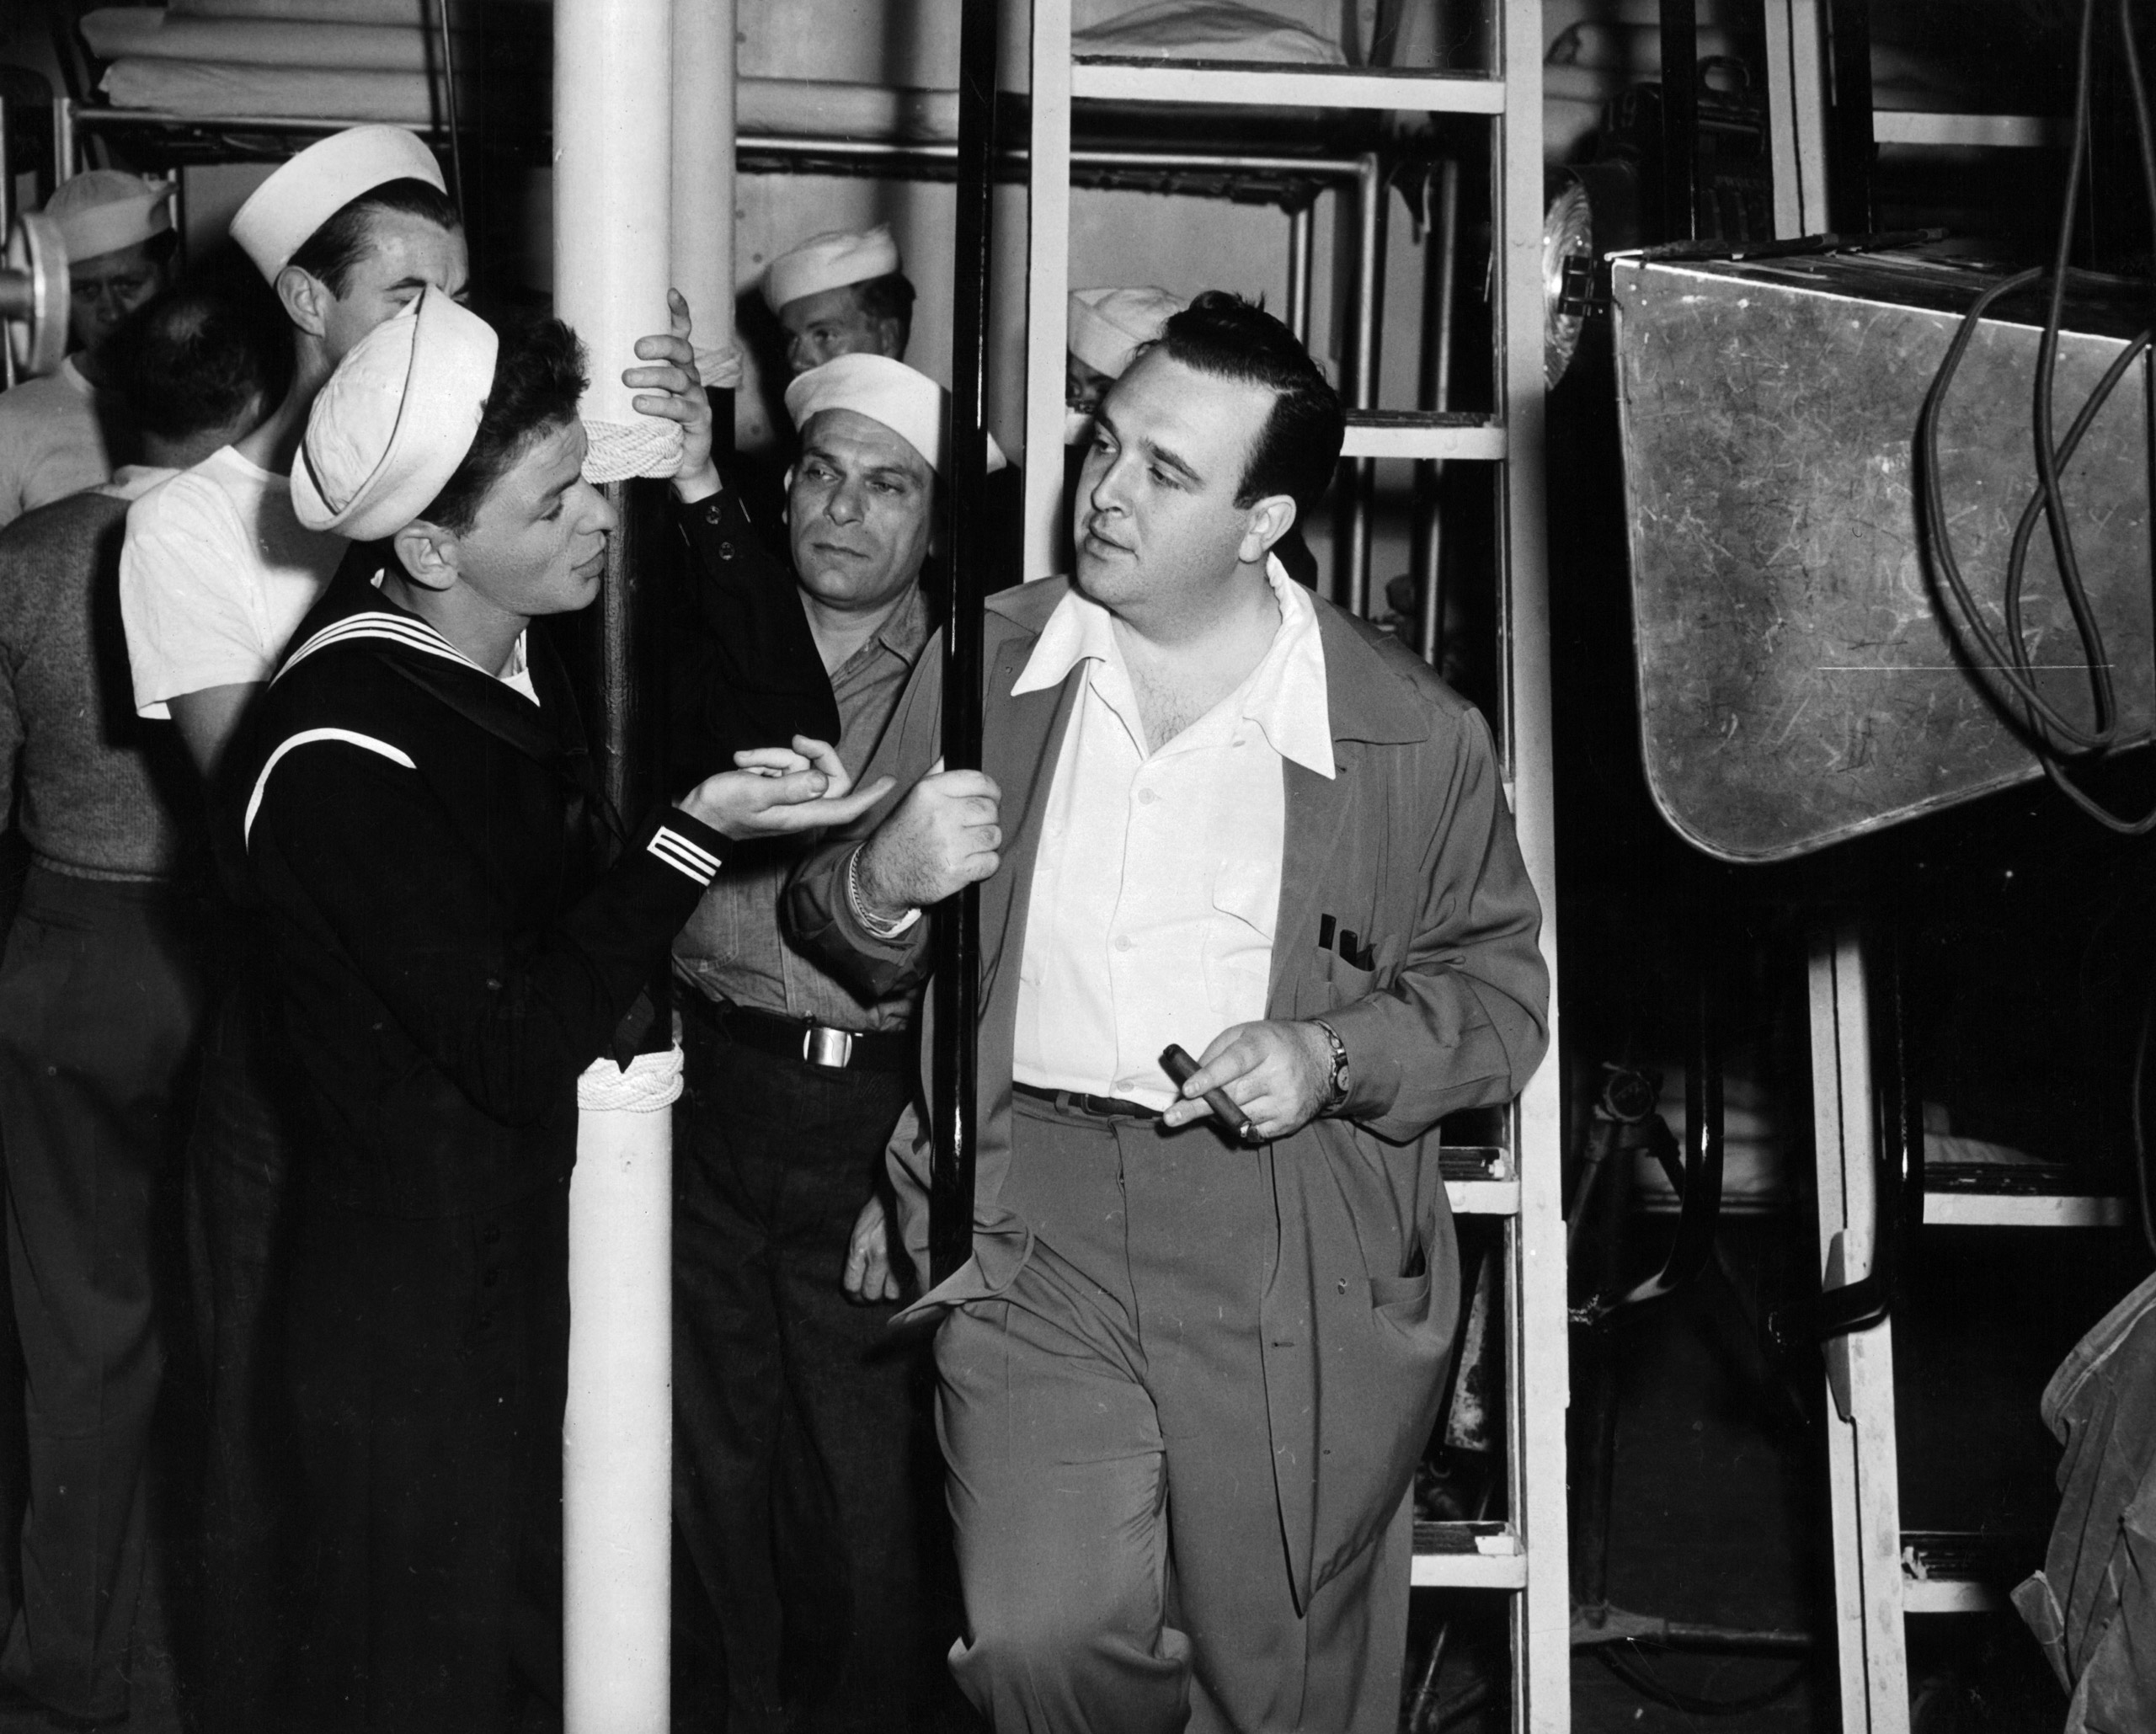 Frank Sinatra having conversation with director George Sidney in between scenes from the film 'Anchors Aweigh', 1945.